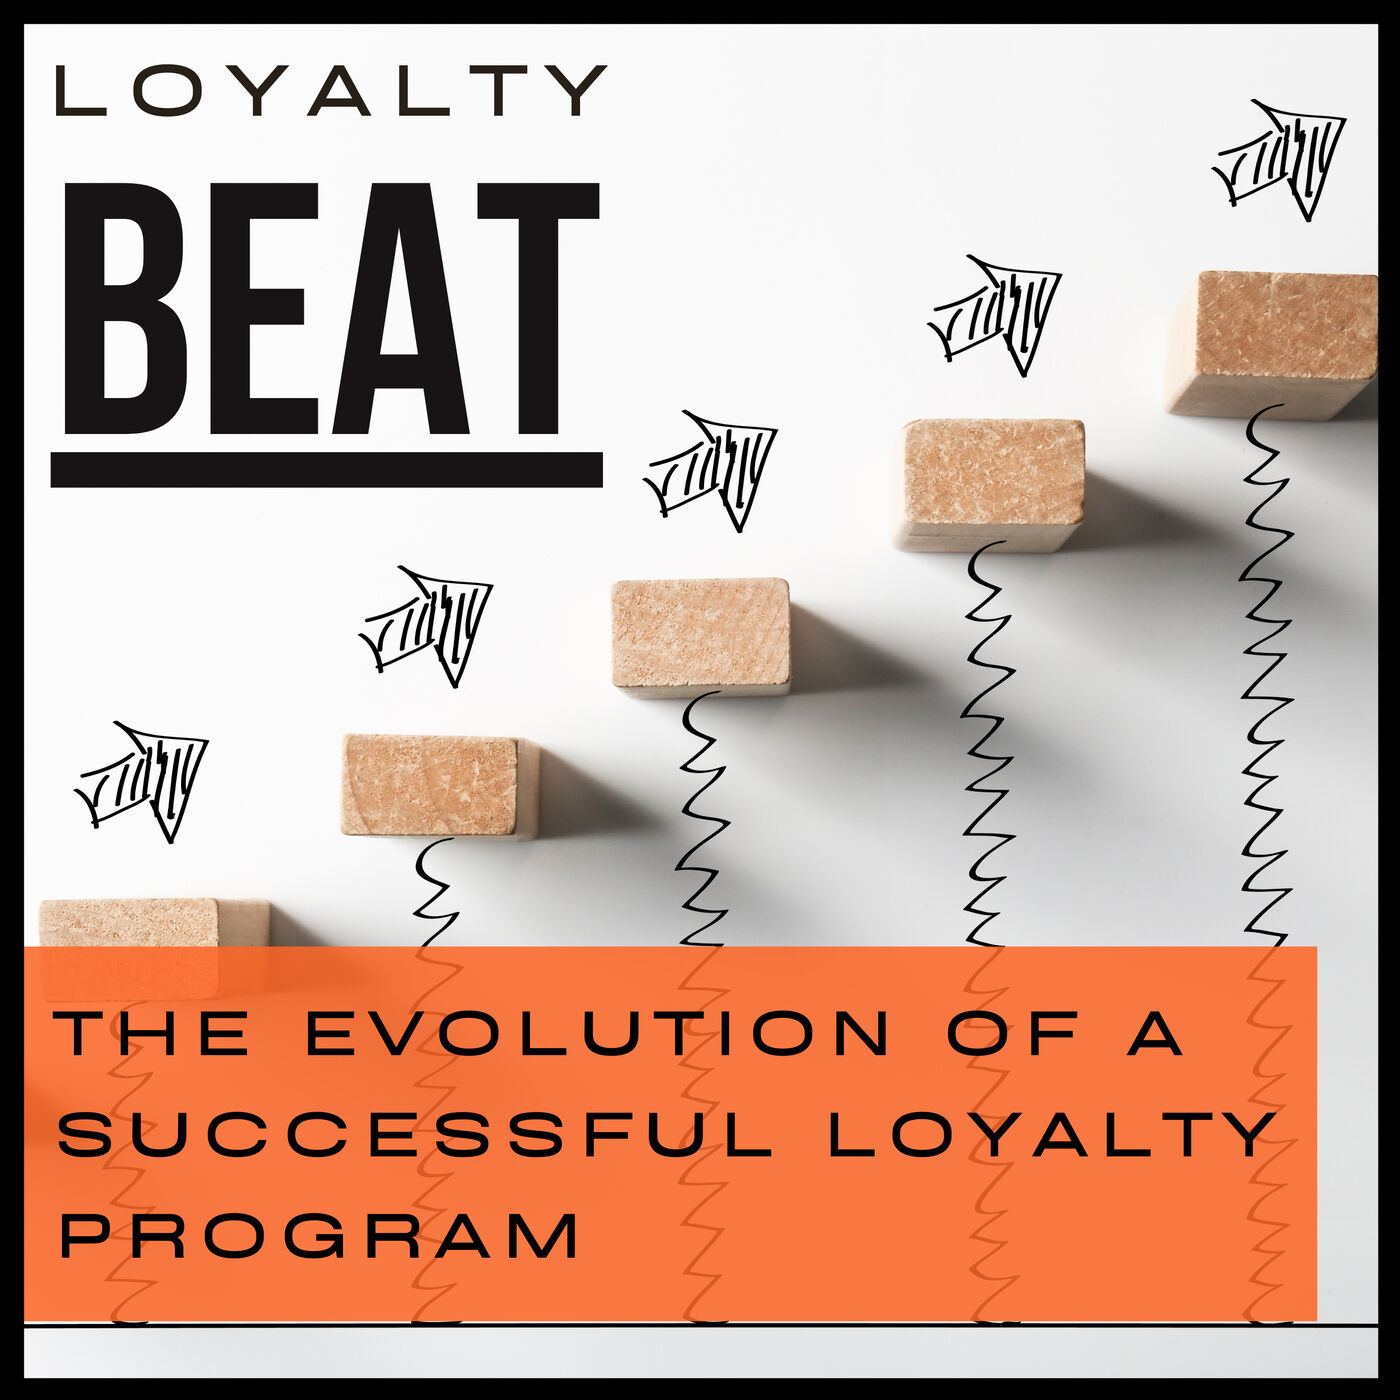 Episode 4: The evolution of successful loyalty